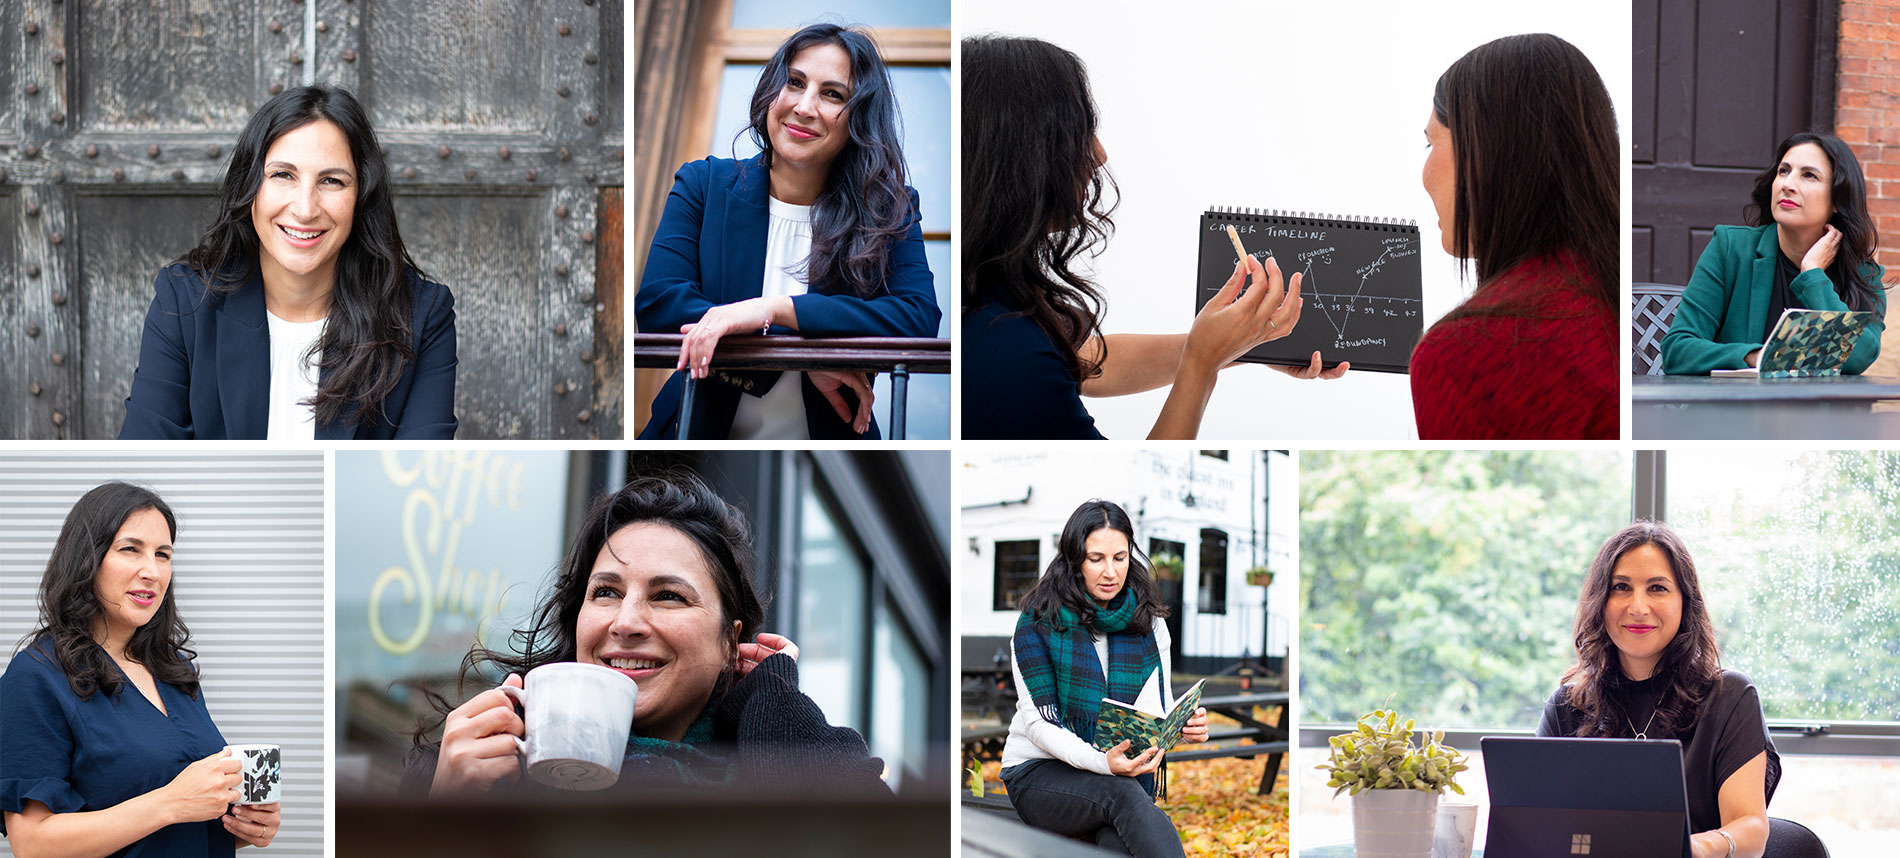 Personal Branding Photography for Life and Career Coach, Tara